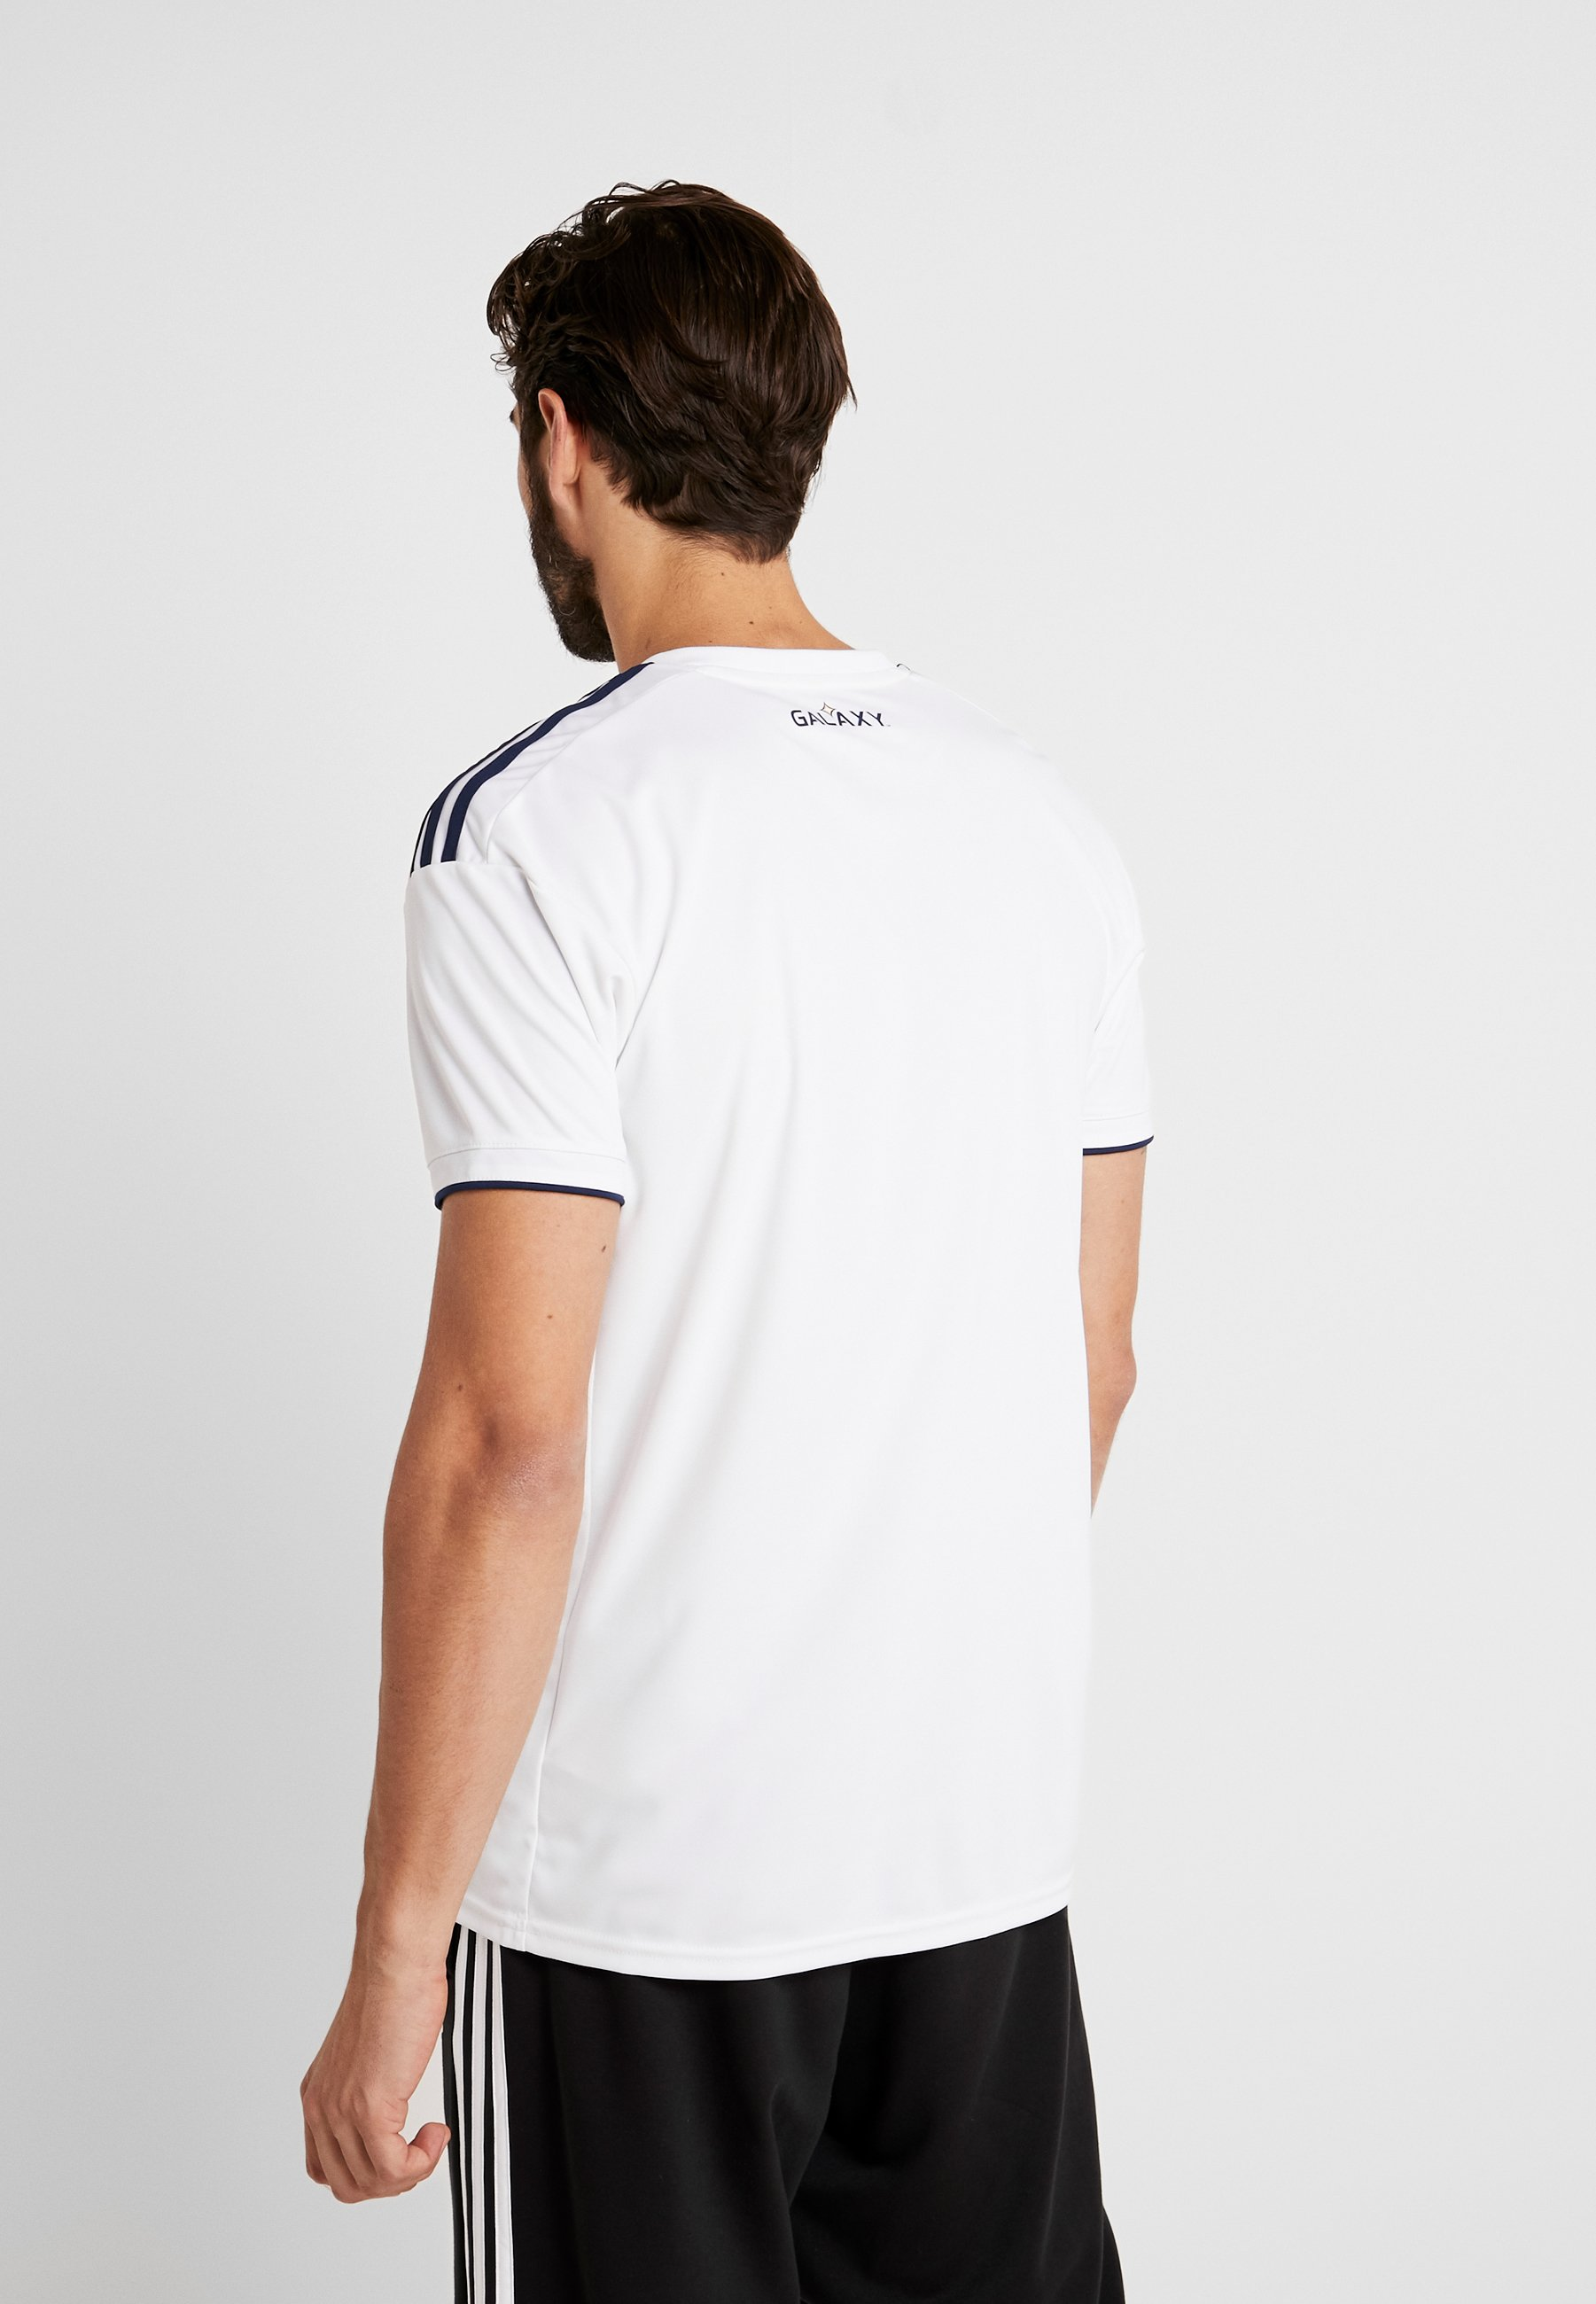 conavy De Supporter cogold LaArticle White Adidas Performance vb6gYf7y